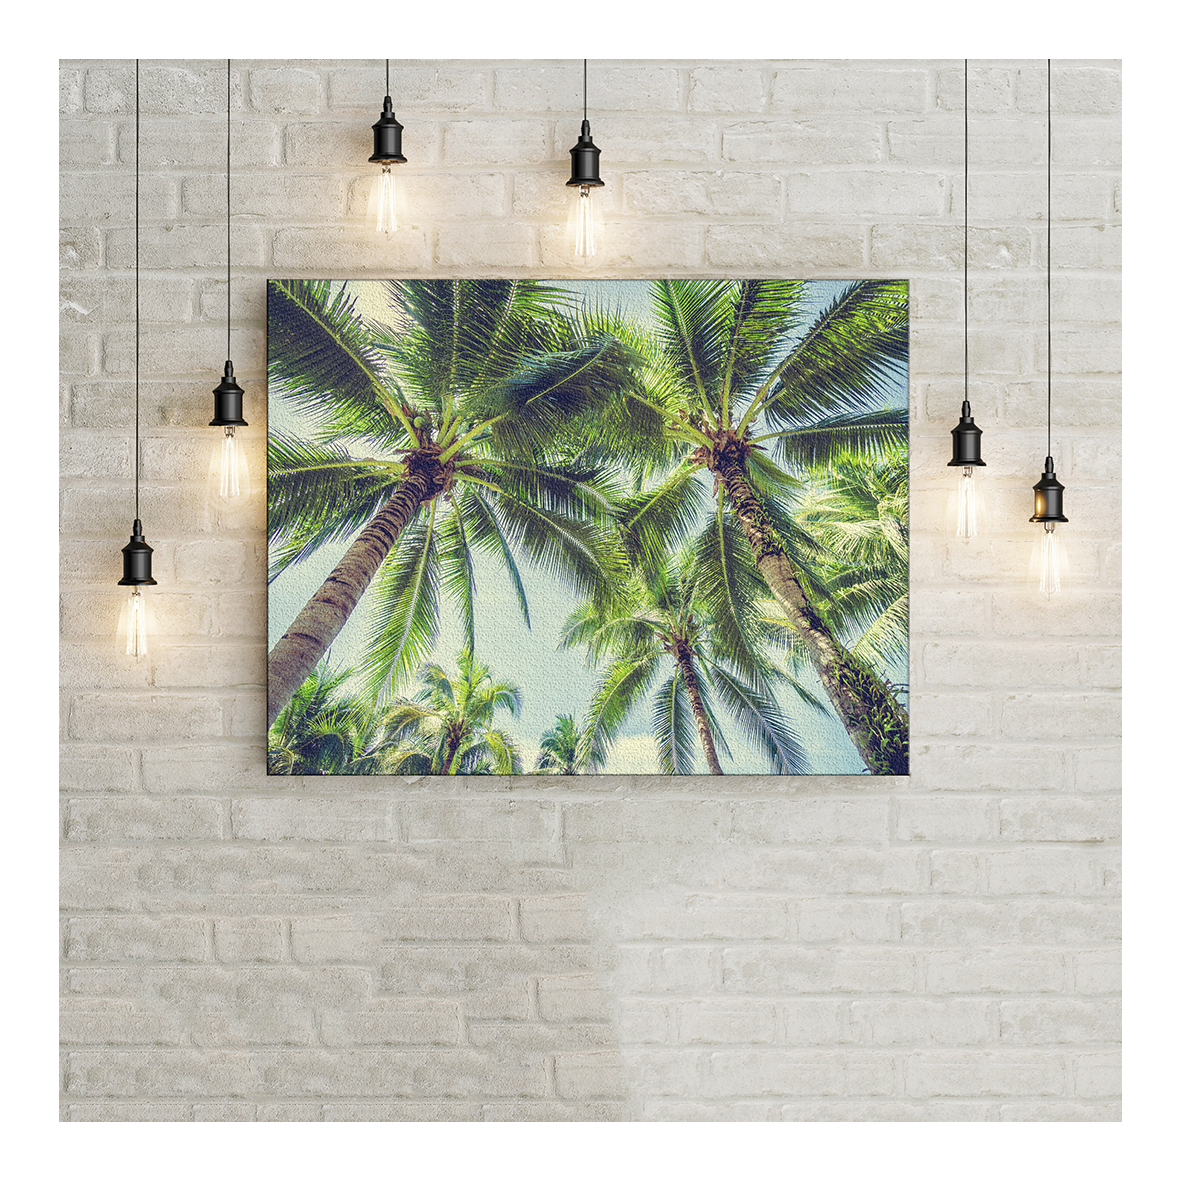 Canvas wrap image on a painted wall with hanging light bulbs.